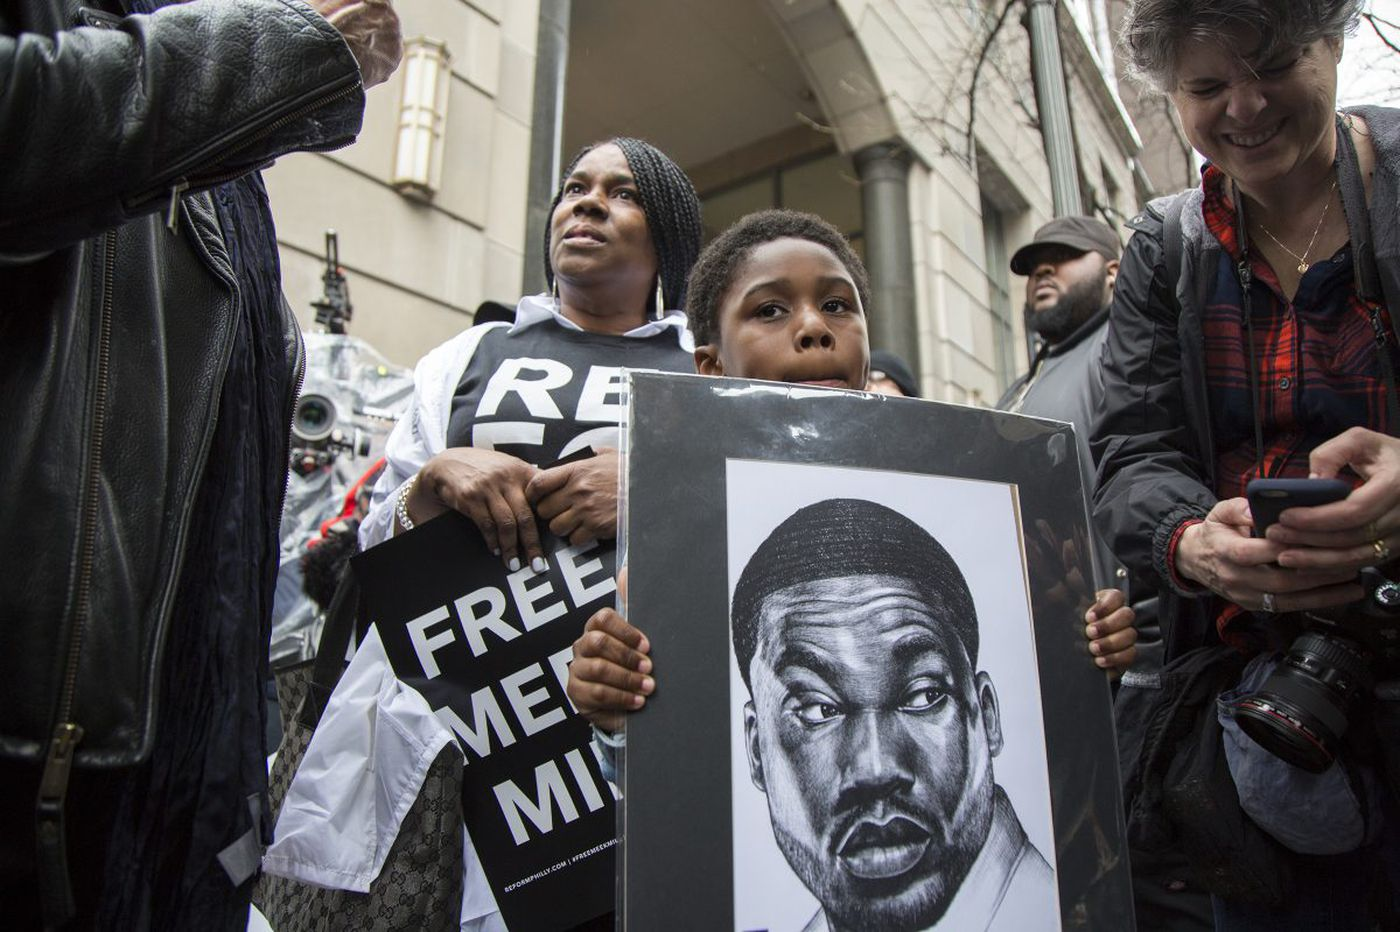 Meek Mill's not alone. Study finds 'indefensible' overuse of probation, parole in Pennsylvania